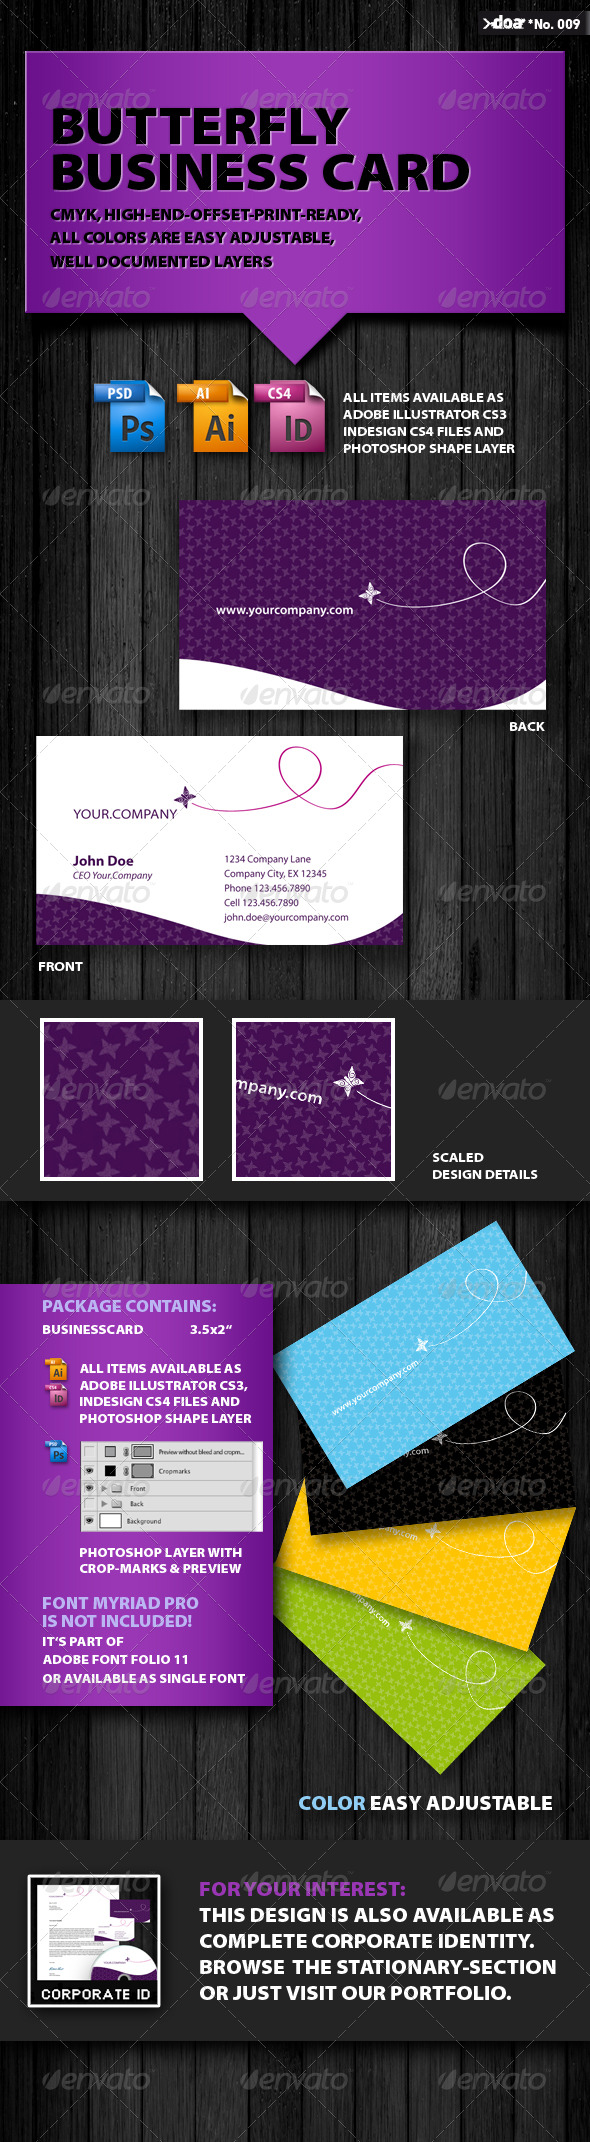 Butterfly Business Card - Creative Business Cards